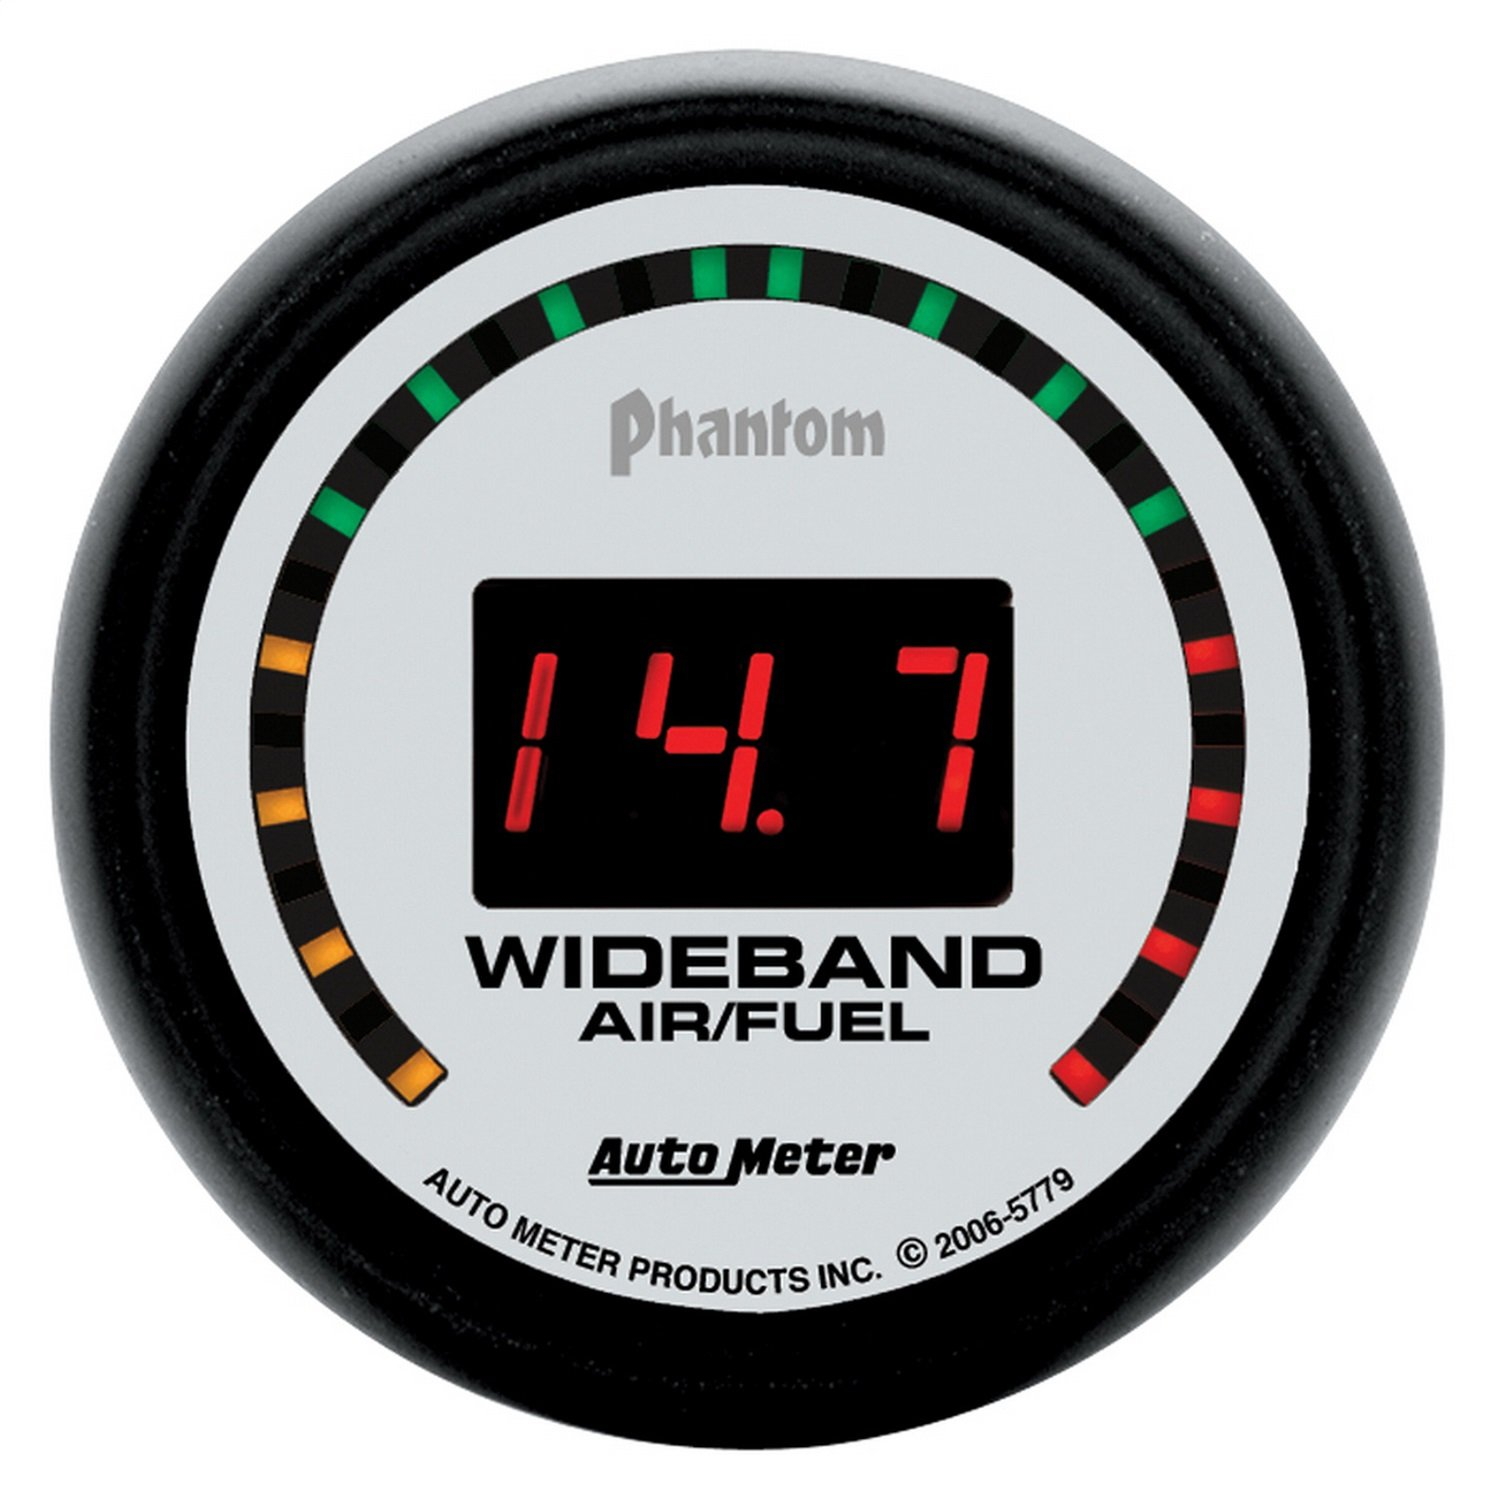 Auto Meter 5779 Phantom 2-1/16' Wideband Air/Fuel Ratio Street Gauge